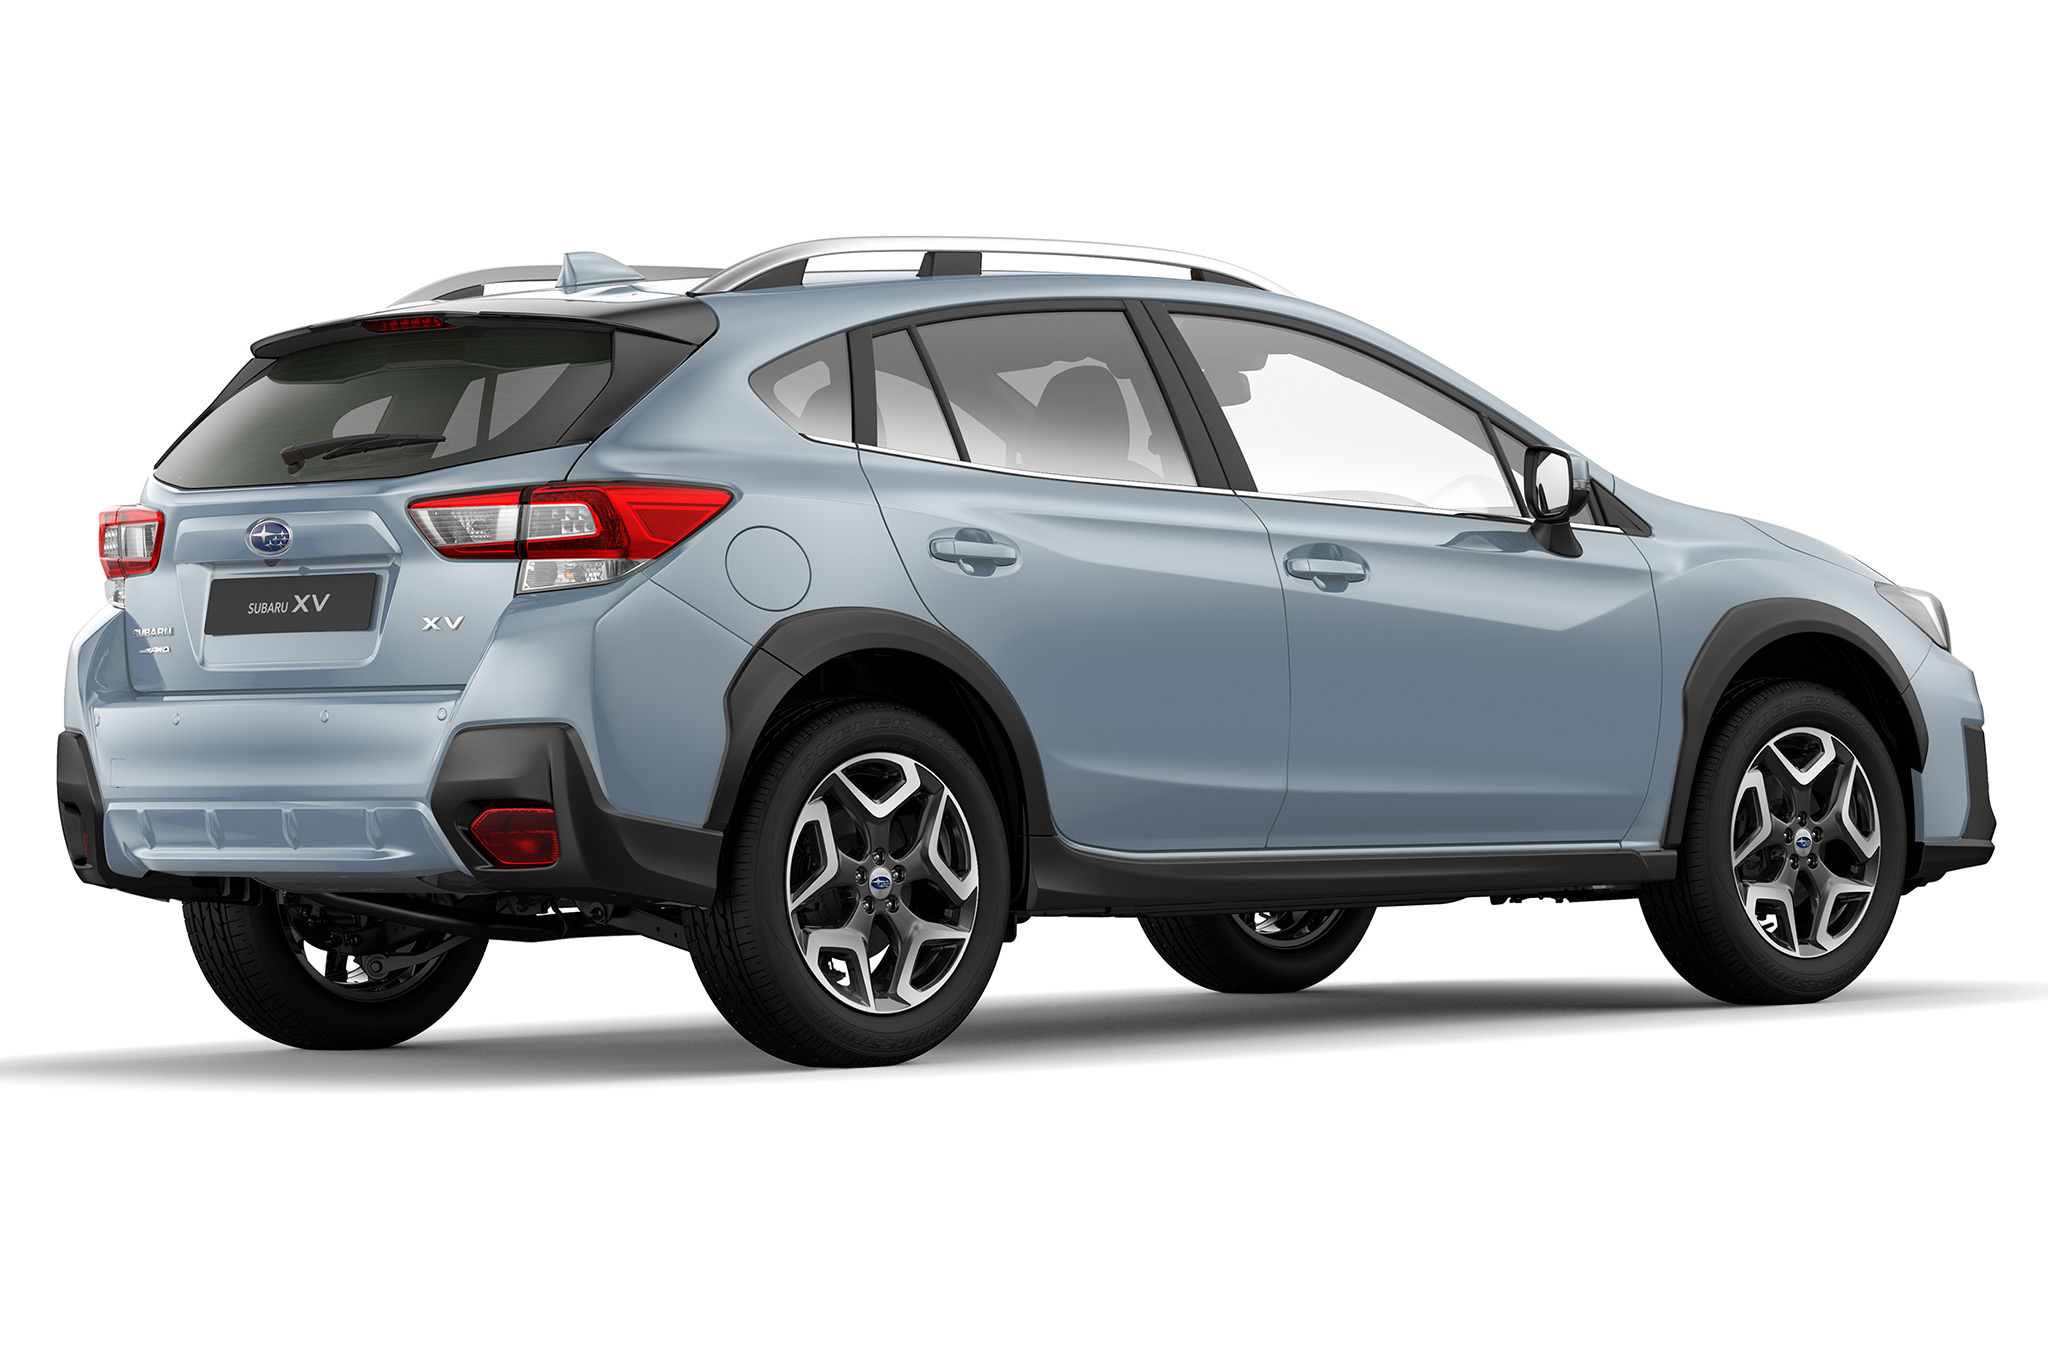 2018-Subaru-Crosstrek-Euro-Spec-rear-side-view